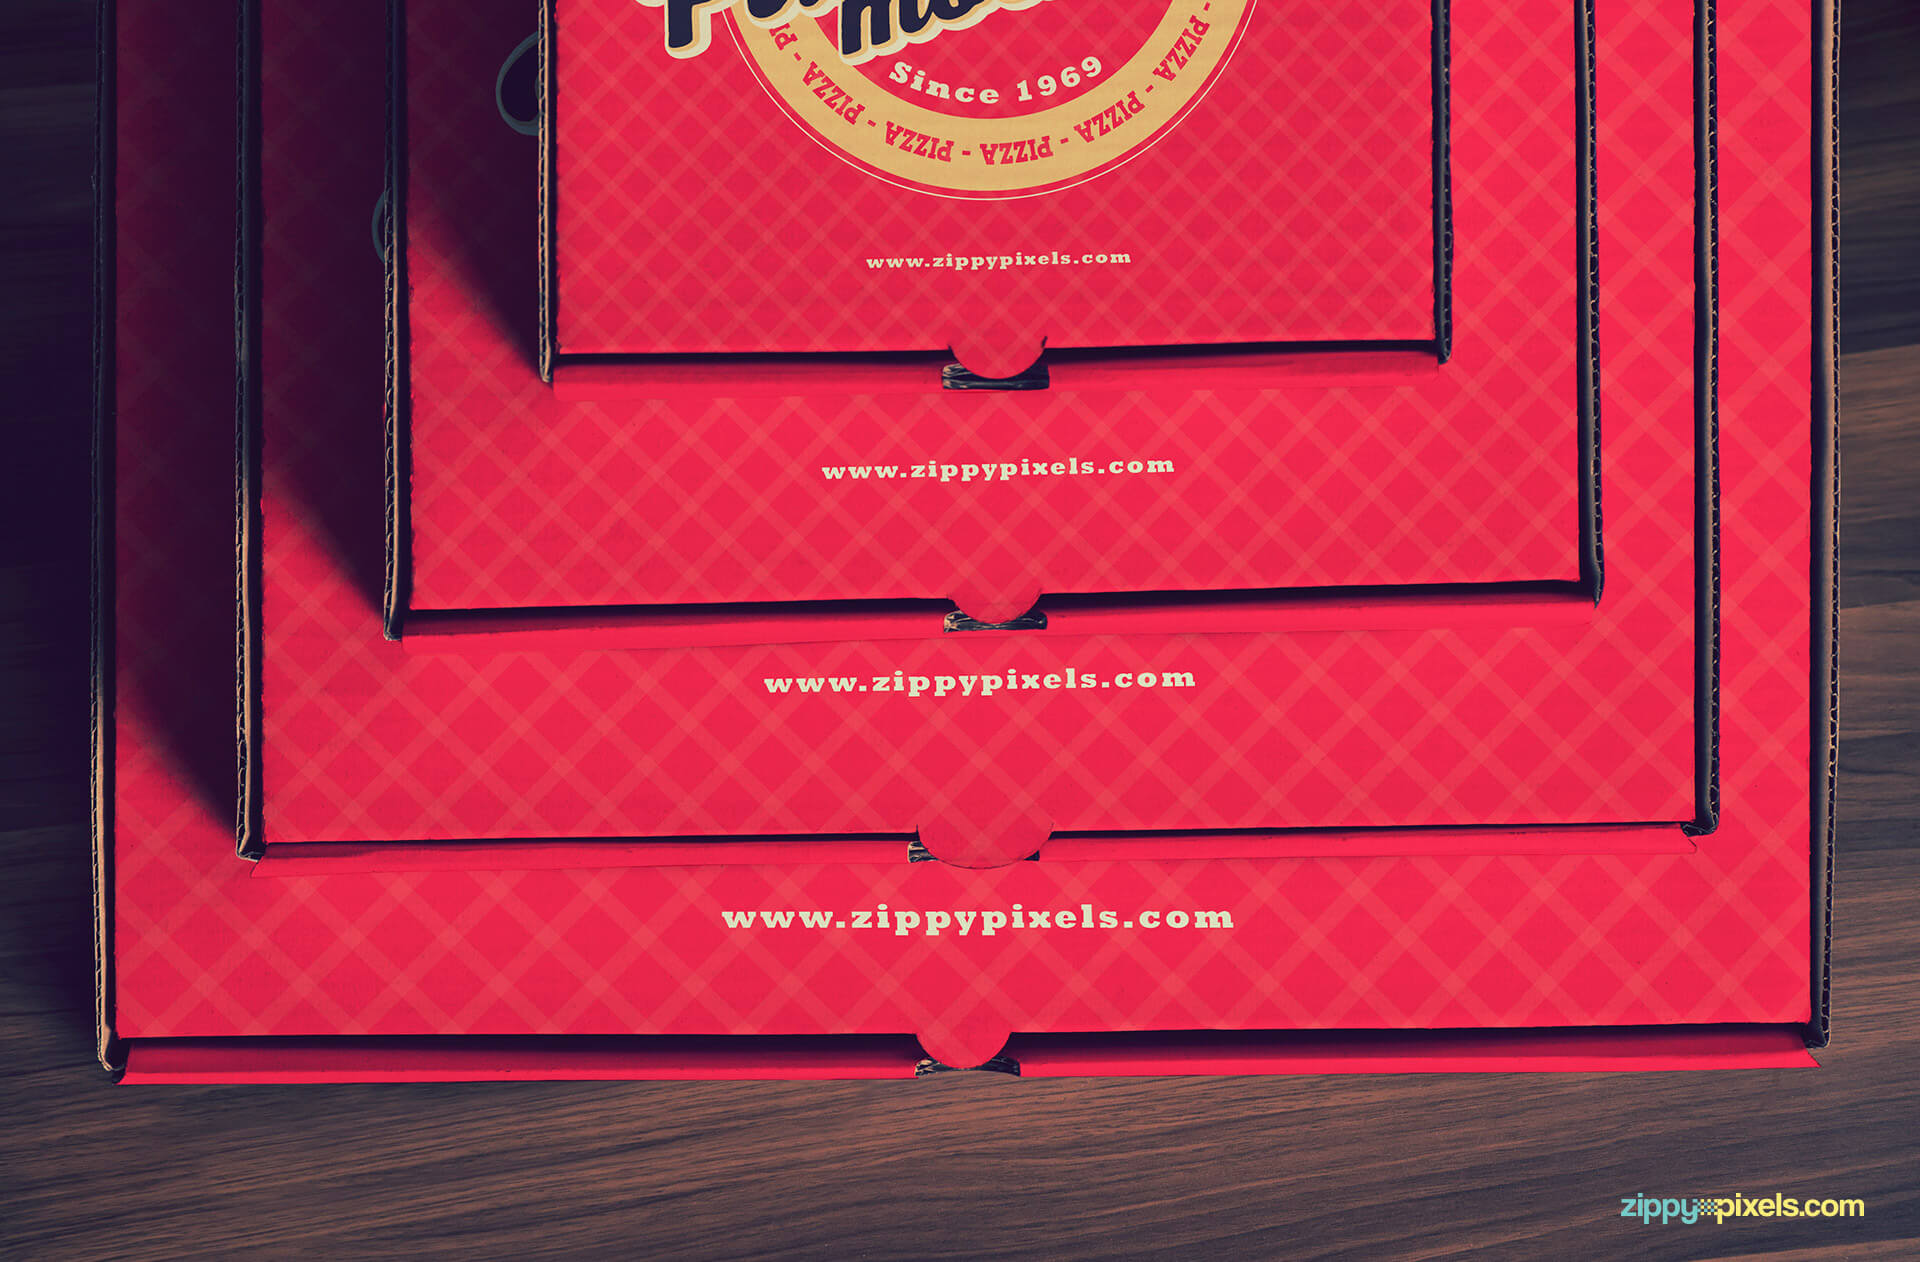 The perfect pizza packaging mock-ups.